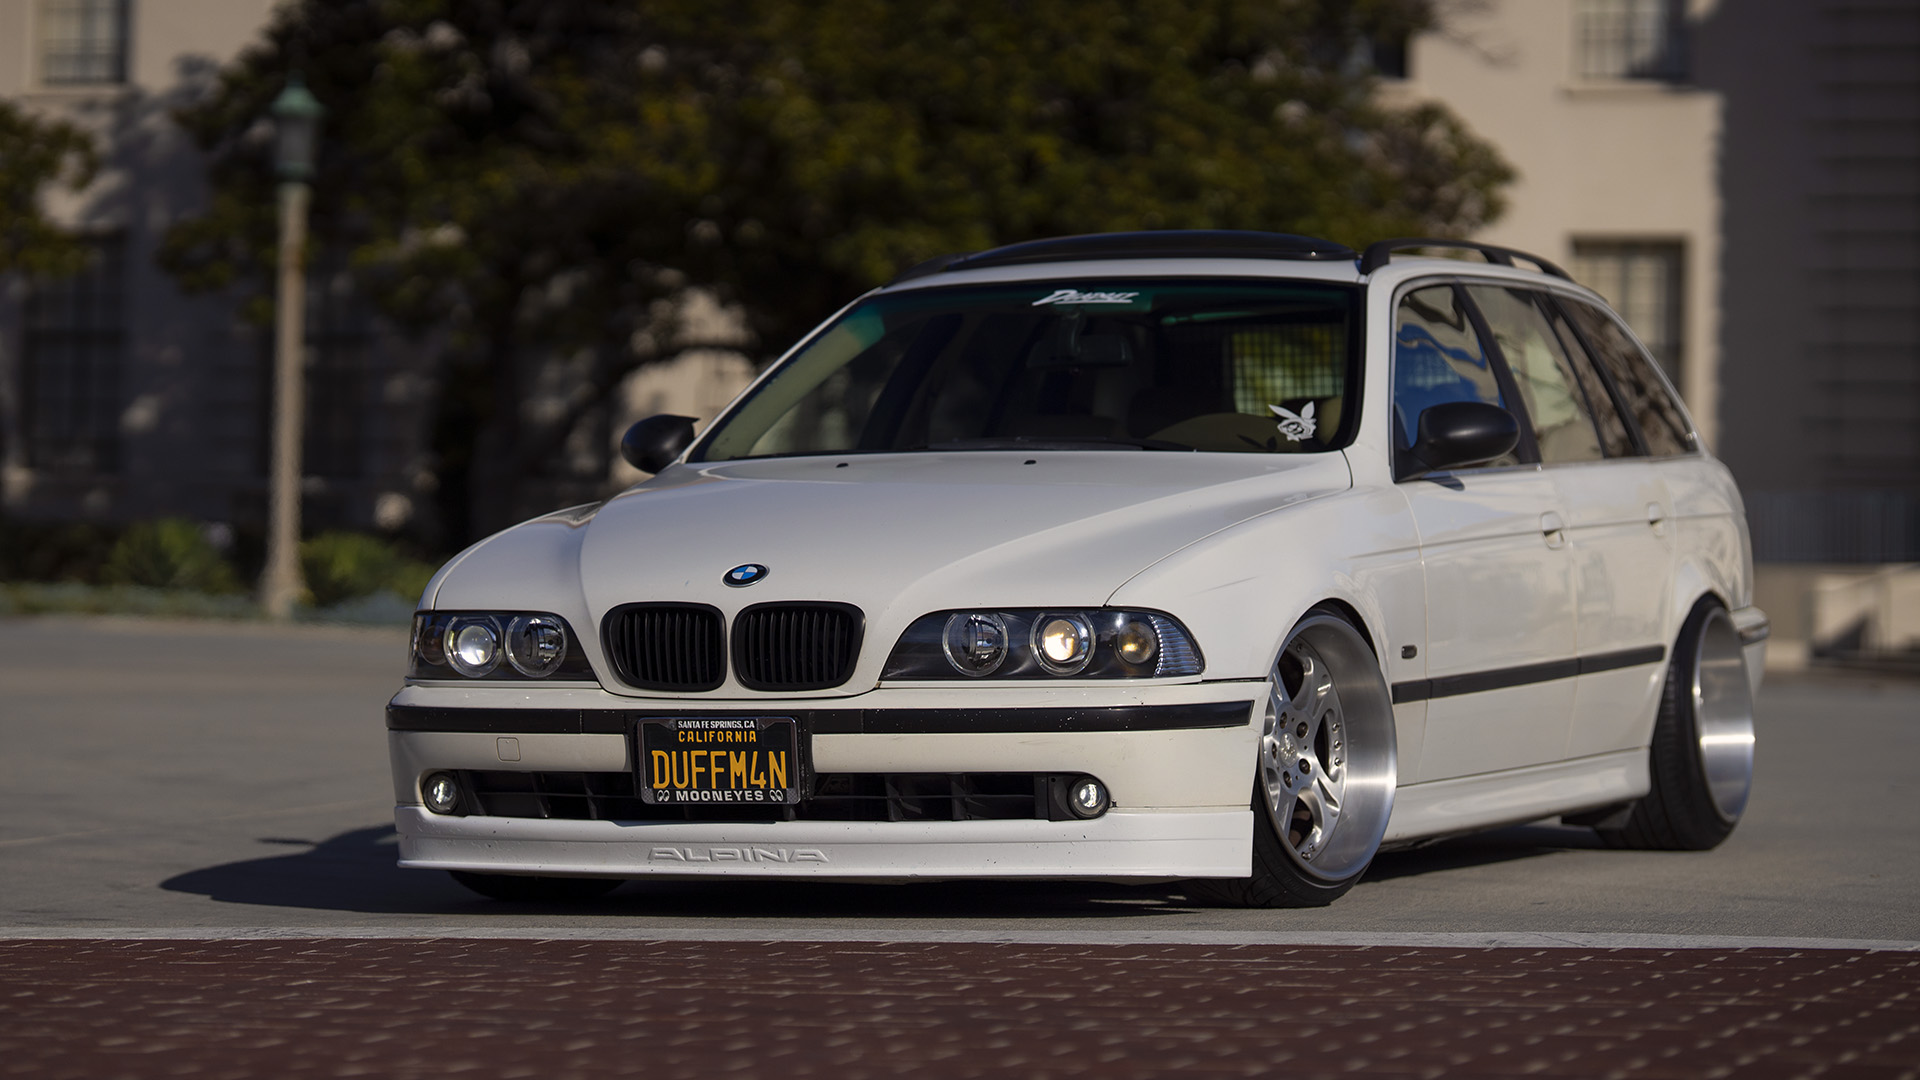 Dead Set On Air - BMW E39 525i Touring